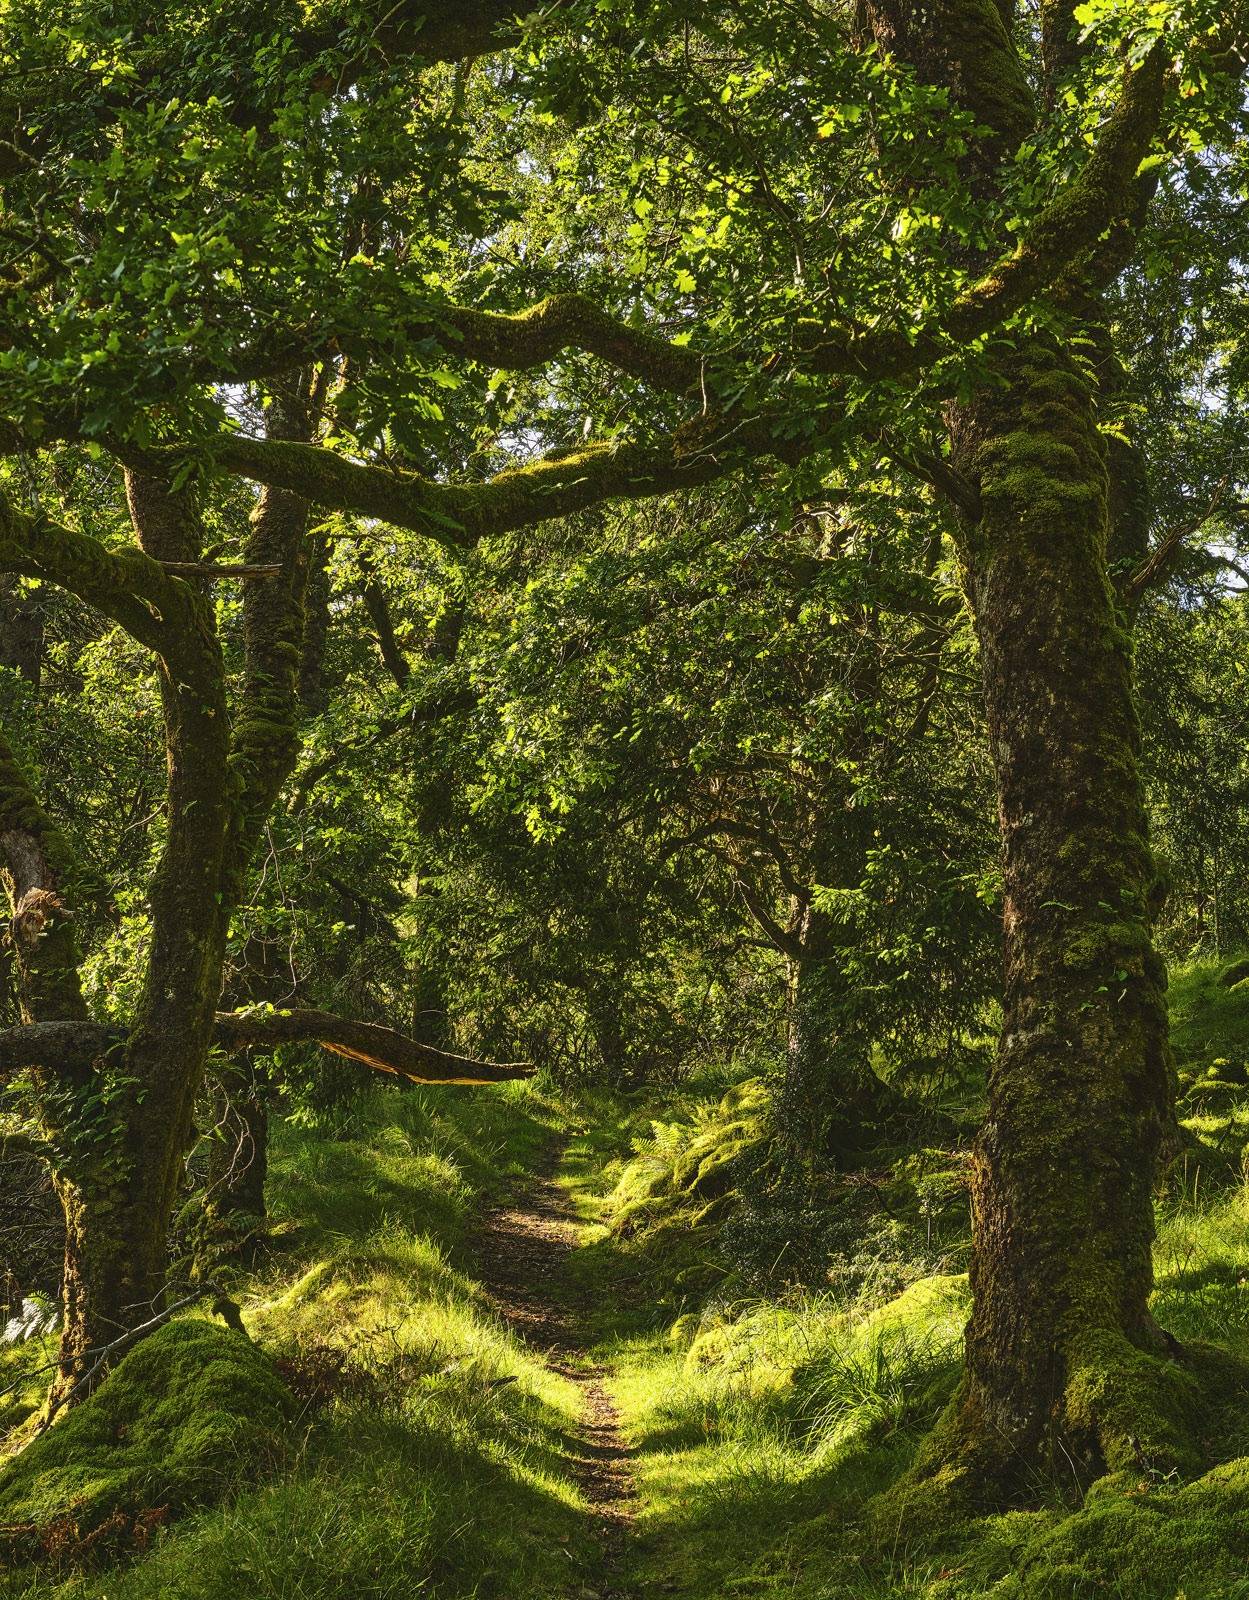 An enchanting path leads through a cathedral of green formed by the ancient oaks in Ariundle Woods in Ardnamurchan. I waited...